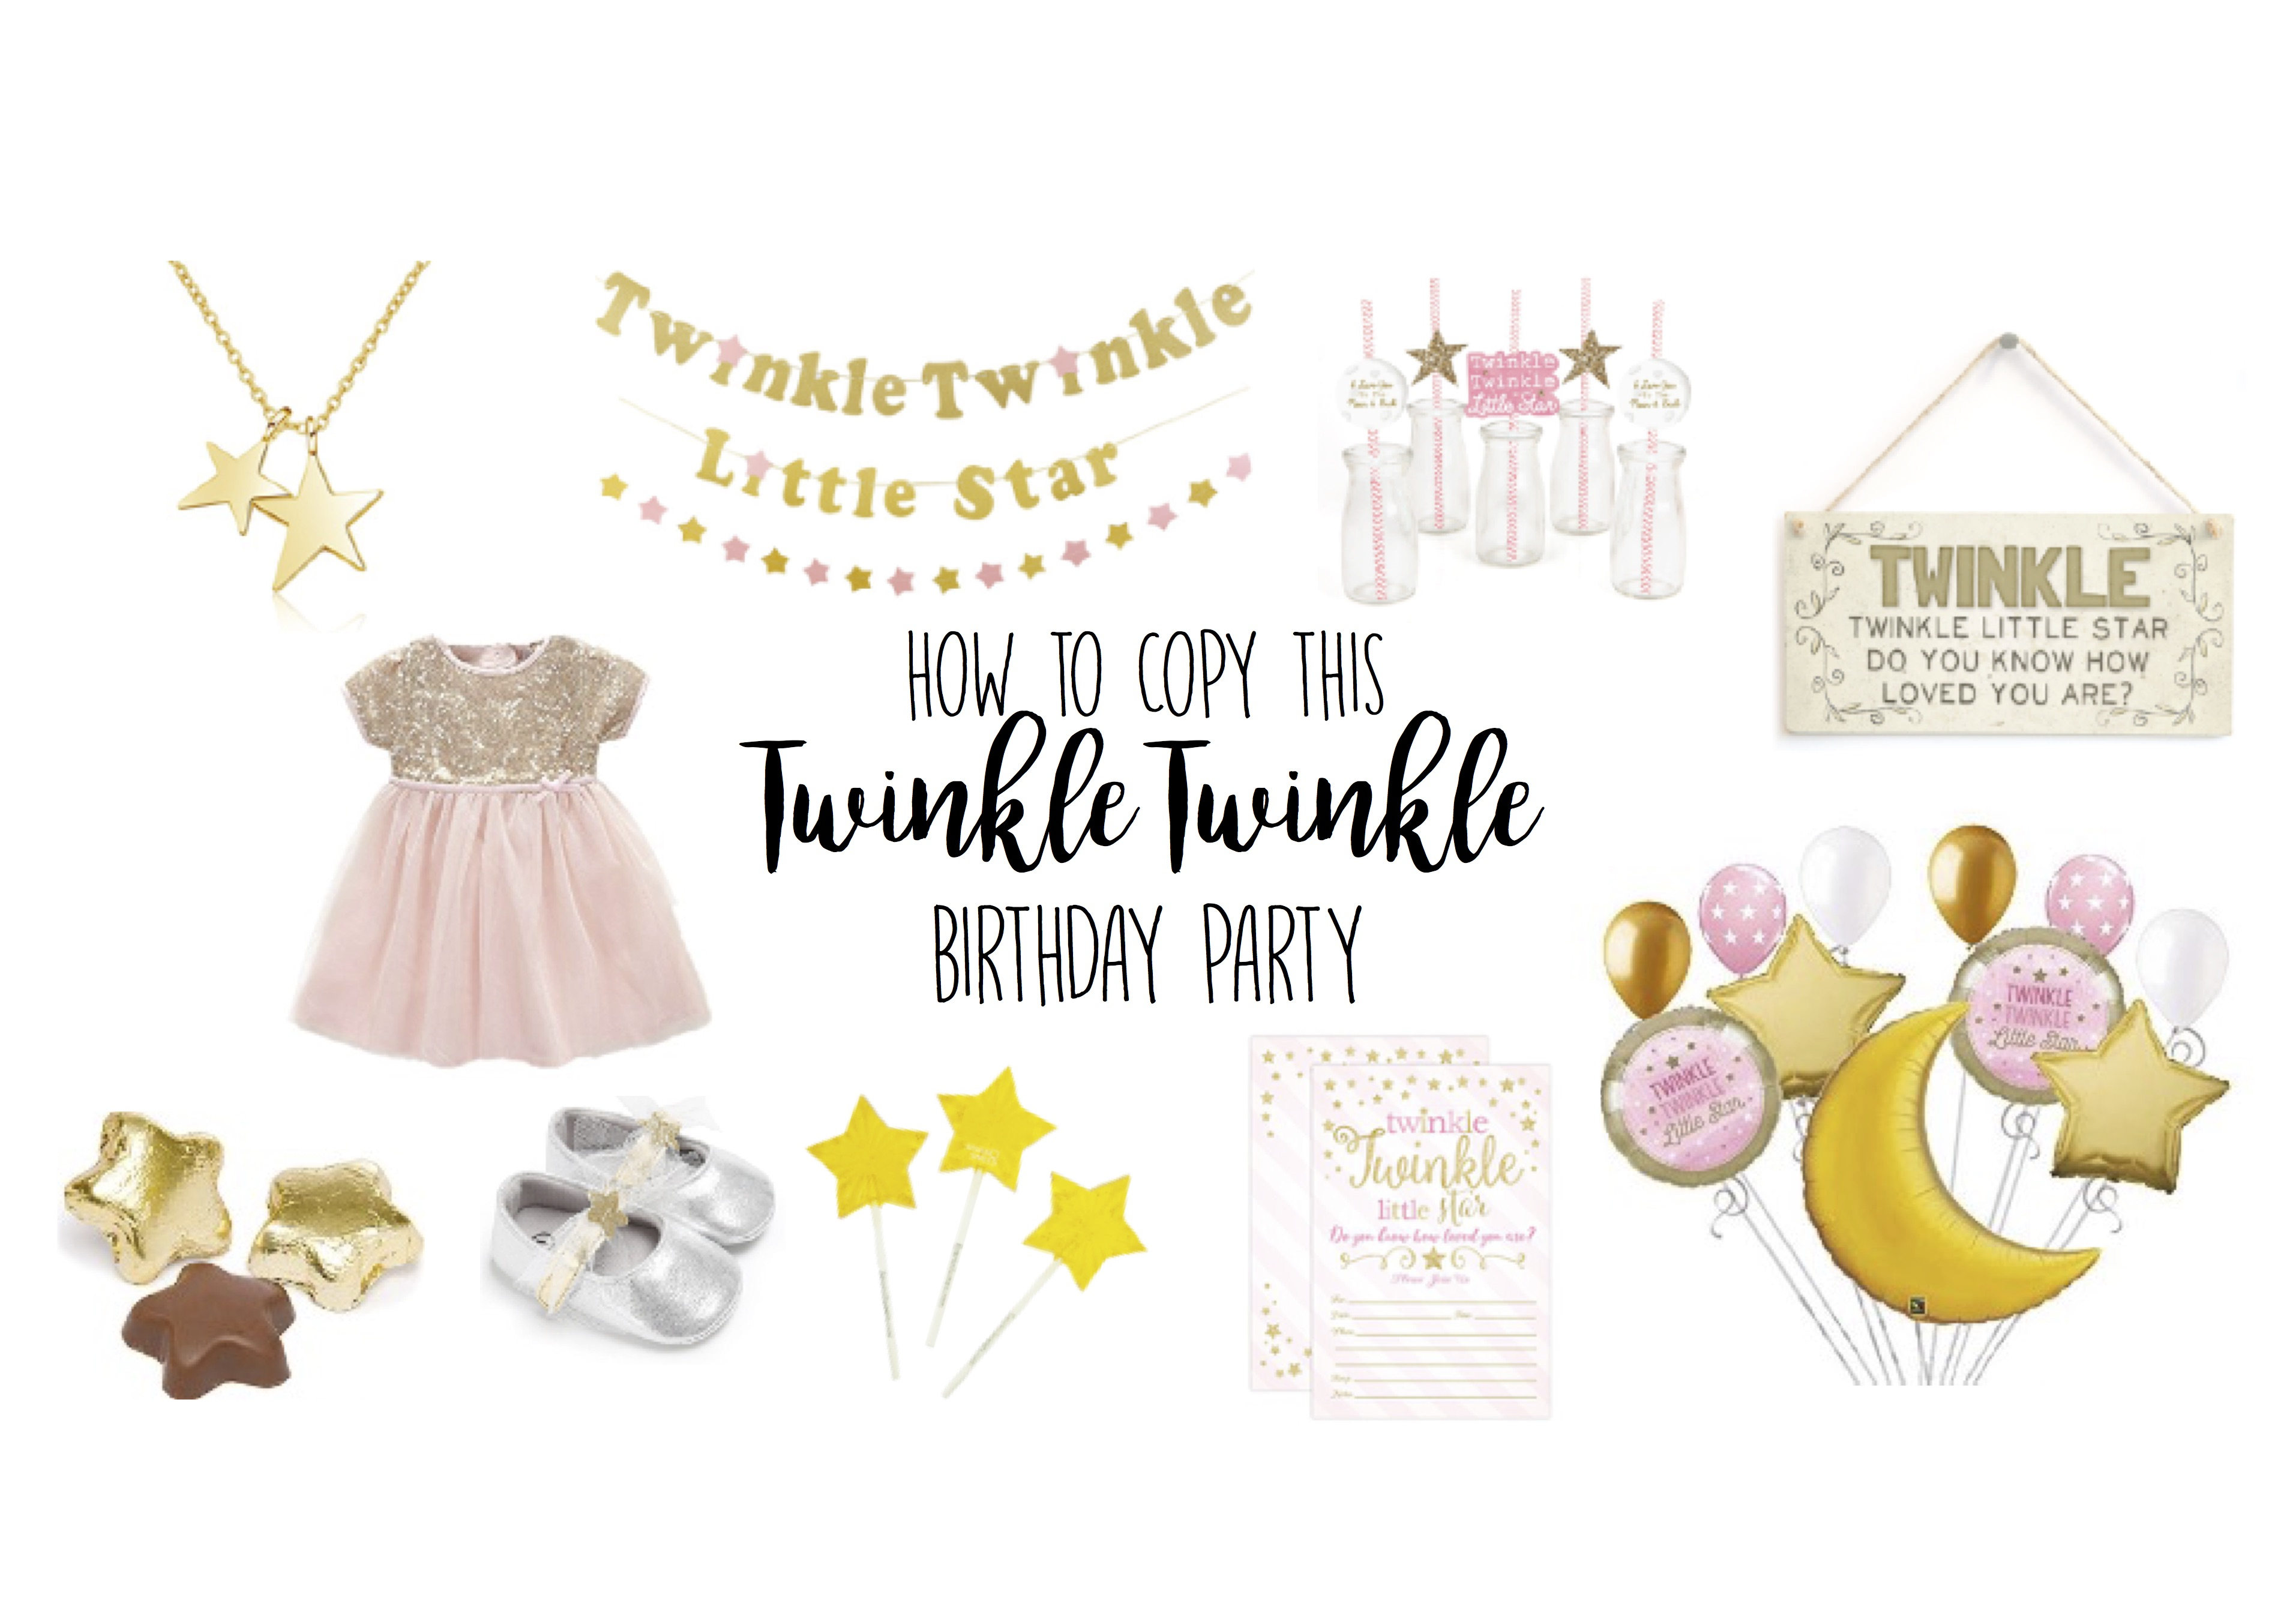 Twinkle Twinkle Little Star Birthday Party Theme Ideas for Girls